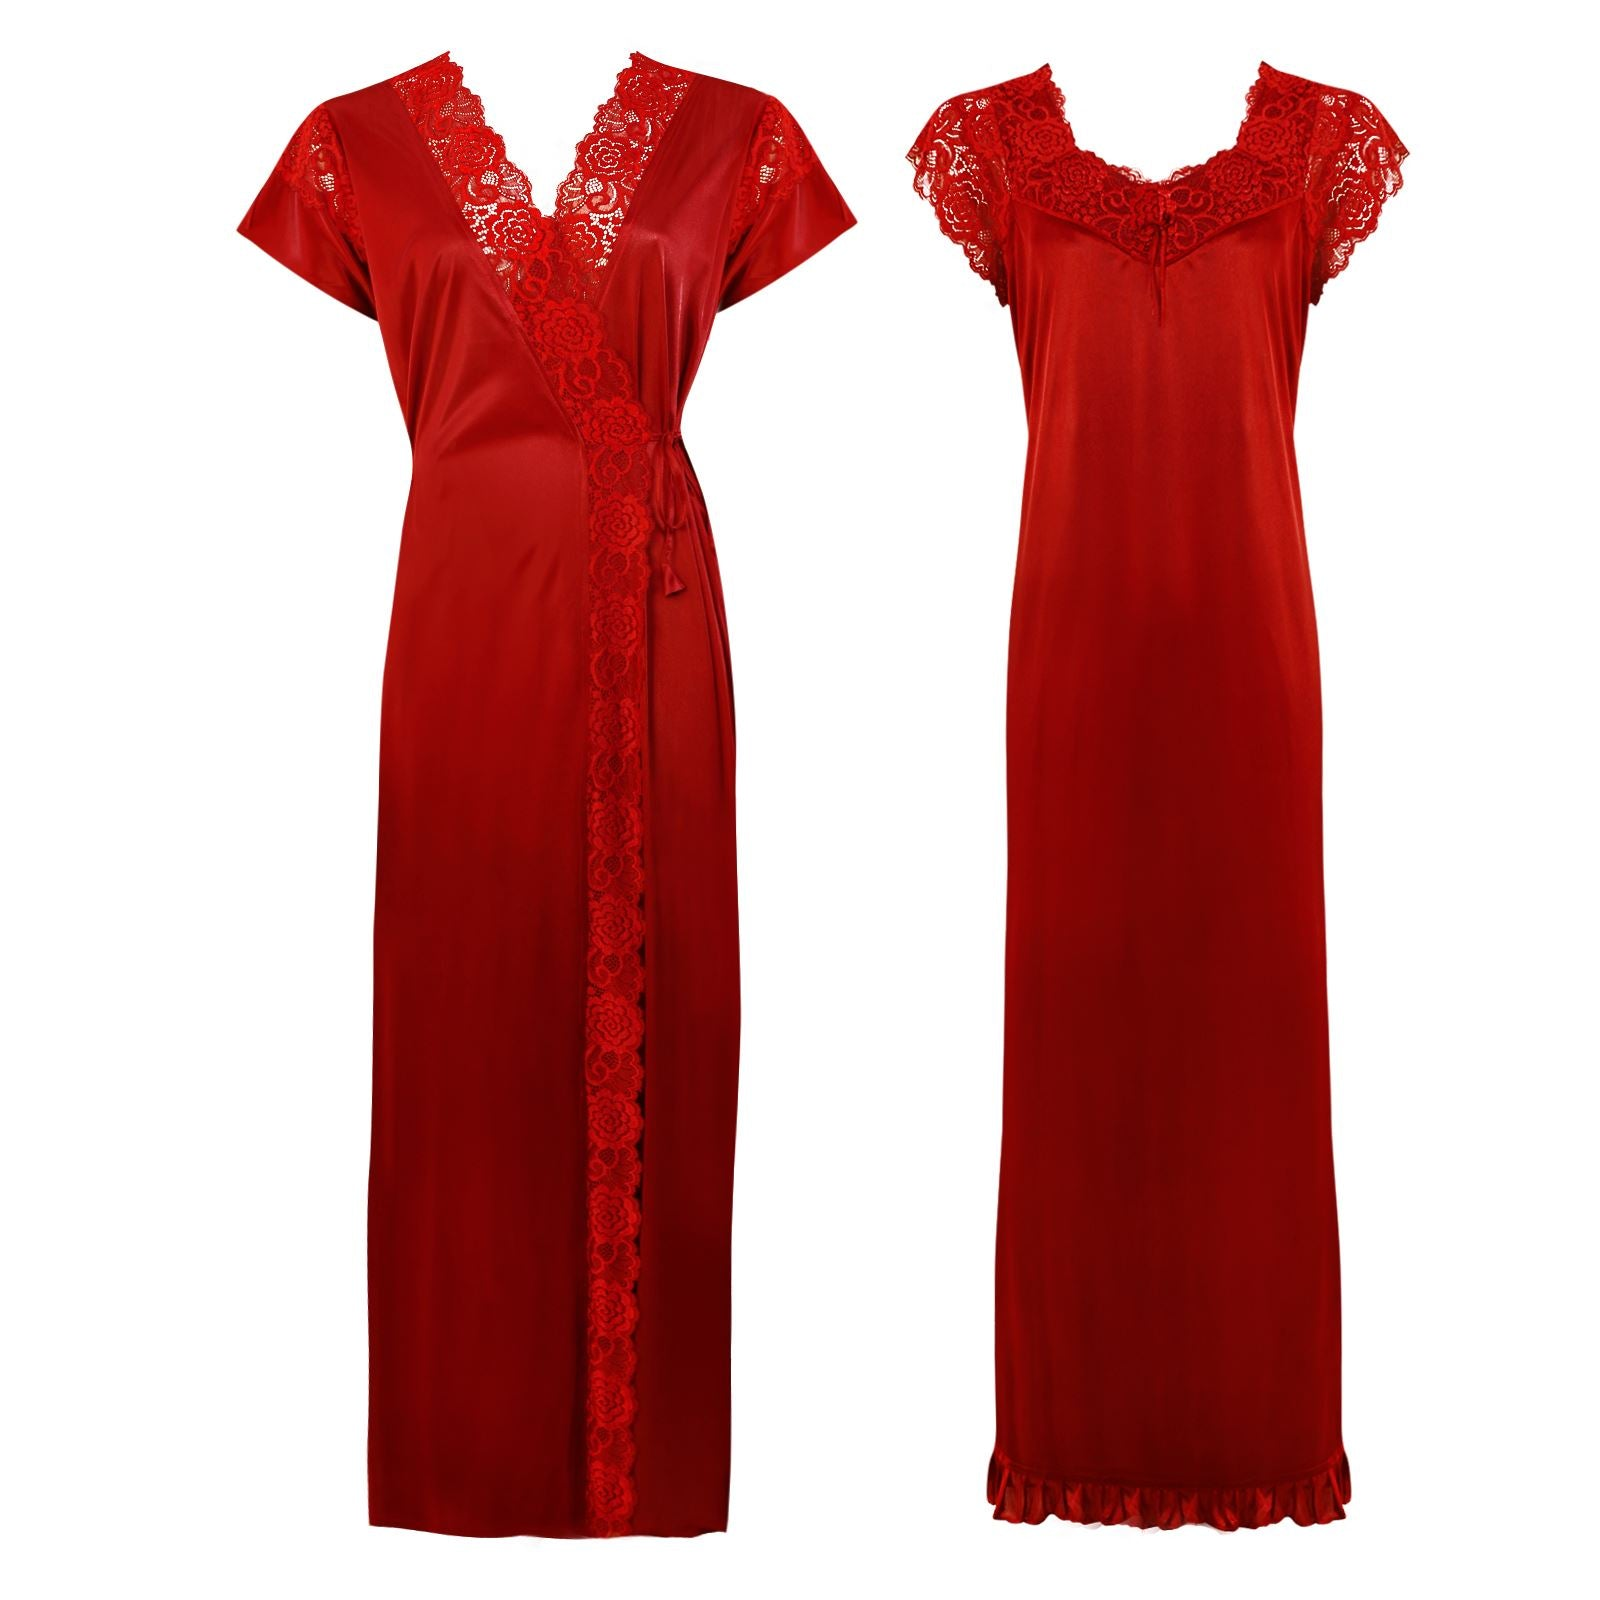 Color: Red 2 Pc Satin Lace Nighty and Robe Size: One Size: Regular (8-14)